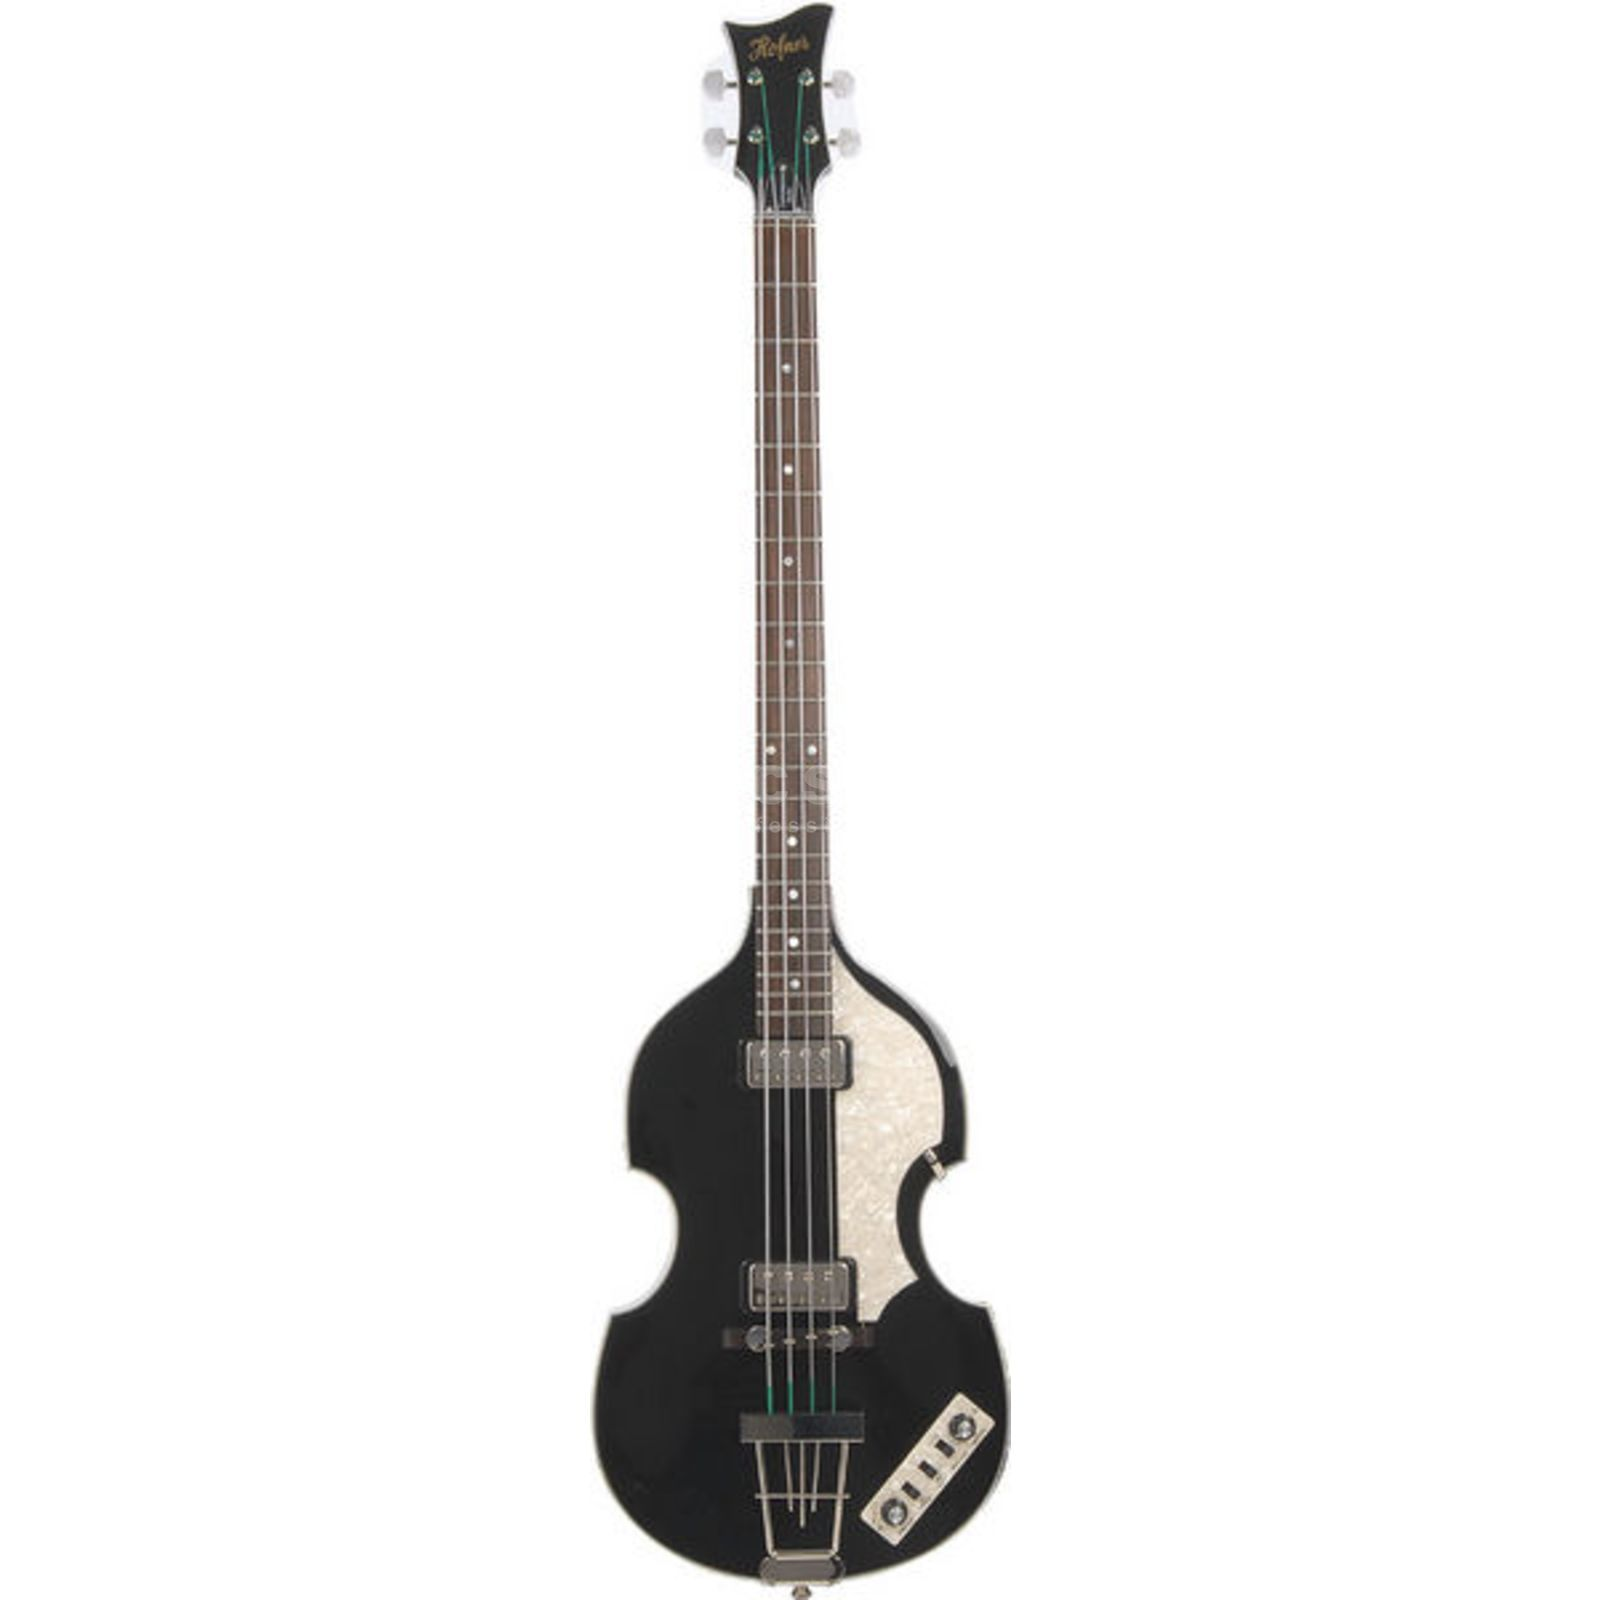 Höfner Contemporary Violin Bass Black HCT-500/1-BK B-Stock Productafbeelding